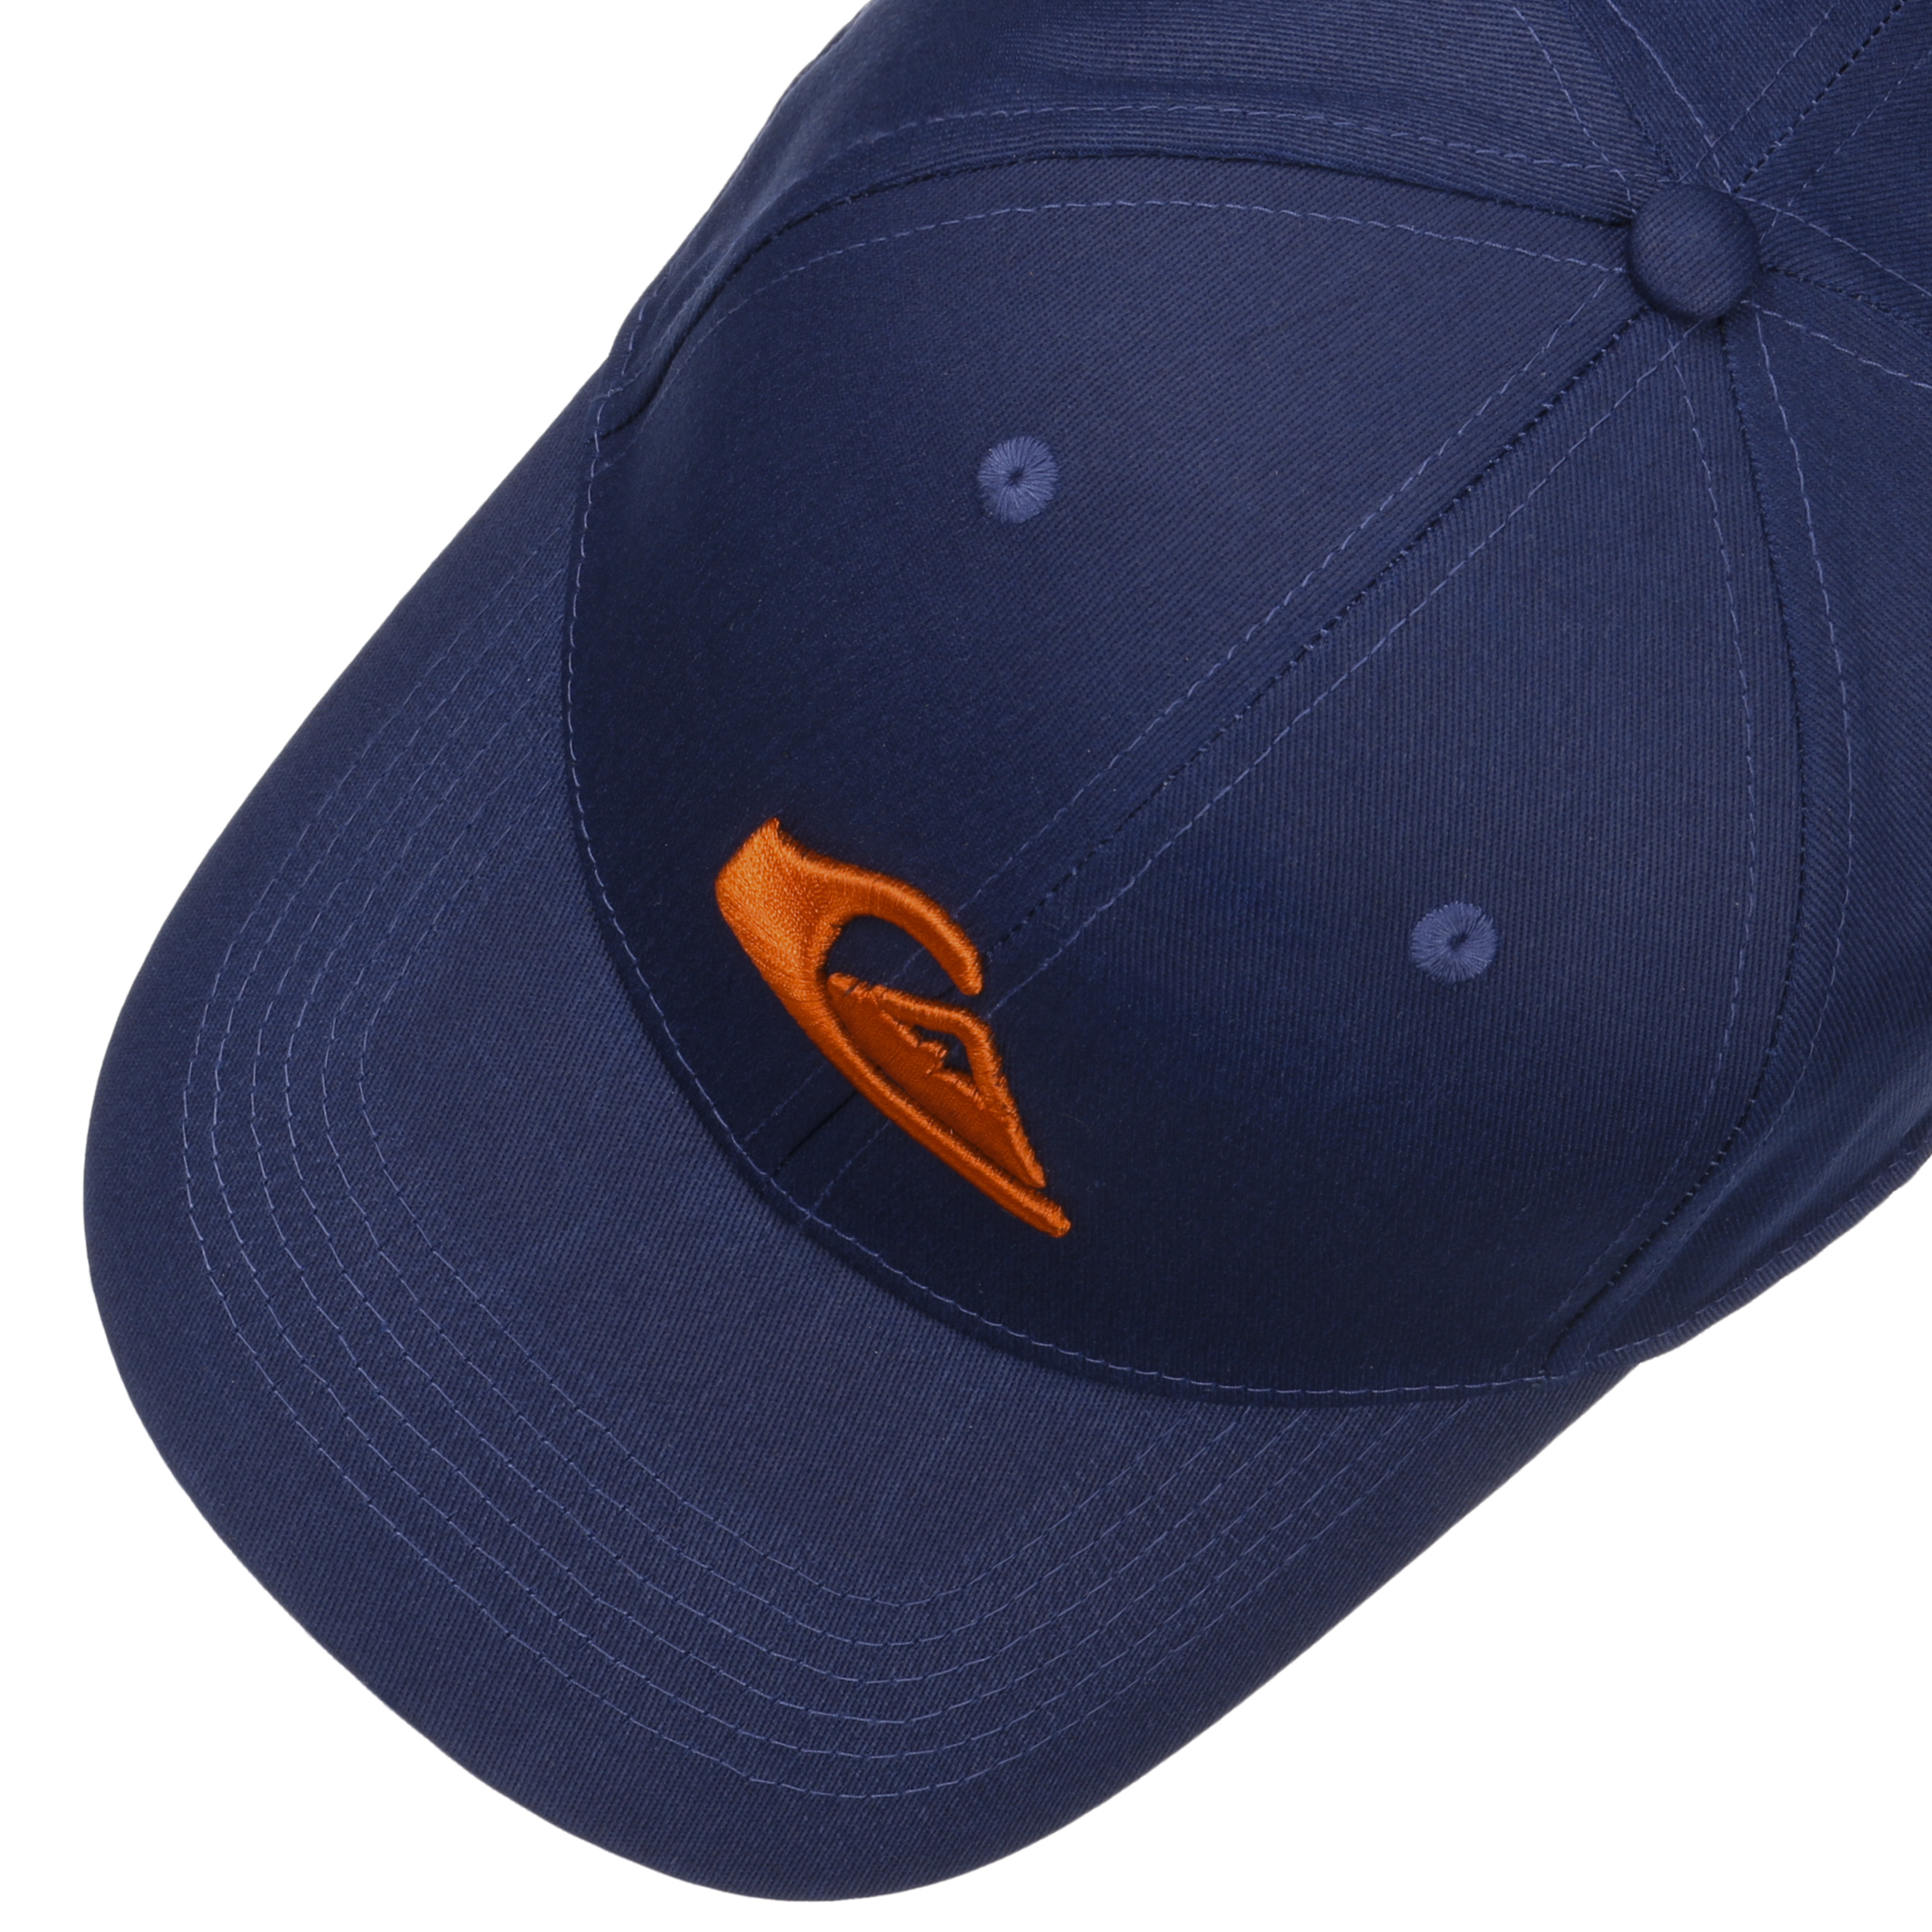 ... Decades Snapback Cap by Quiksilver - navy 1 ... f6422be09956